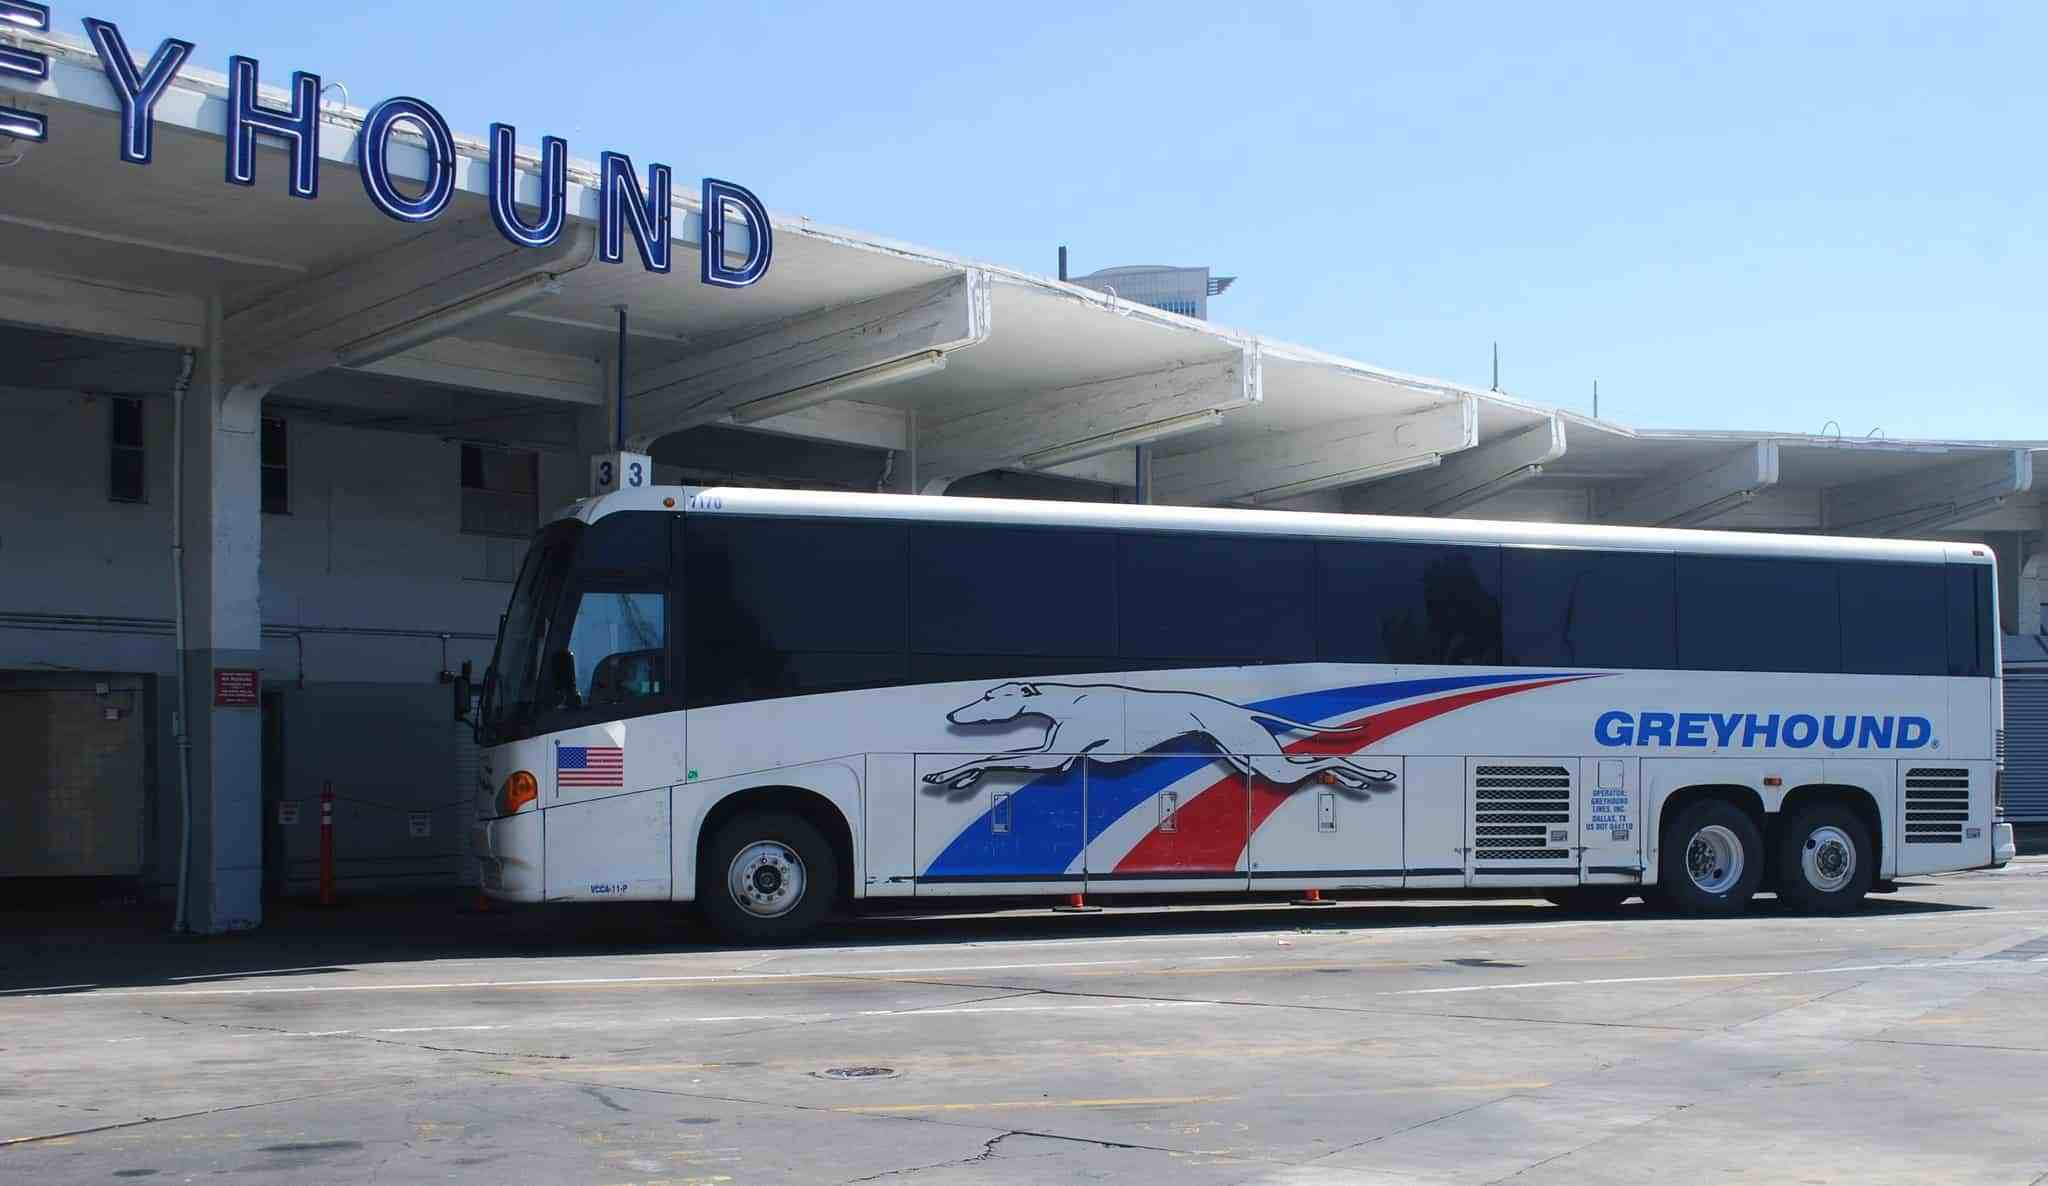 Letter to the editor re: Greyhound route closures in BC